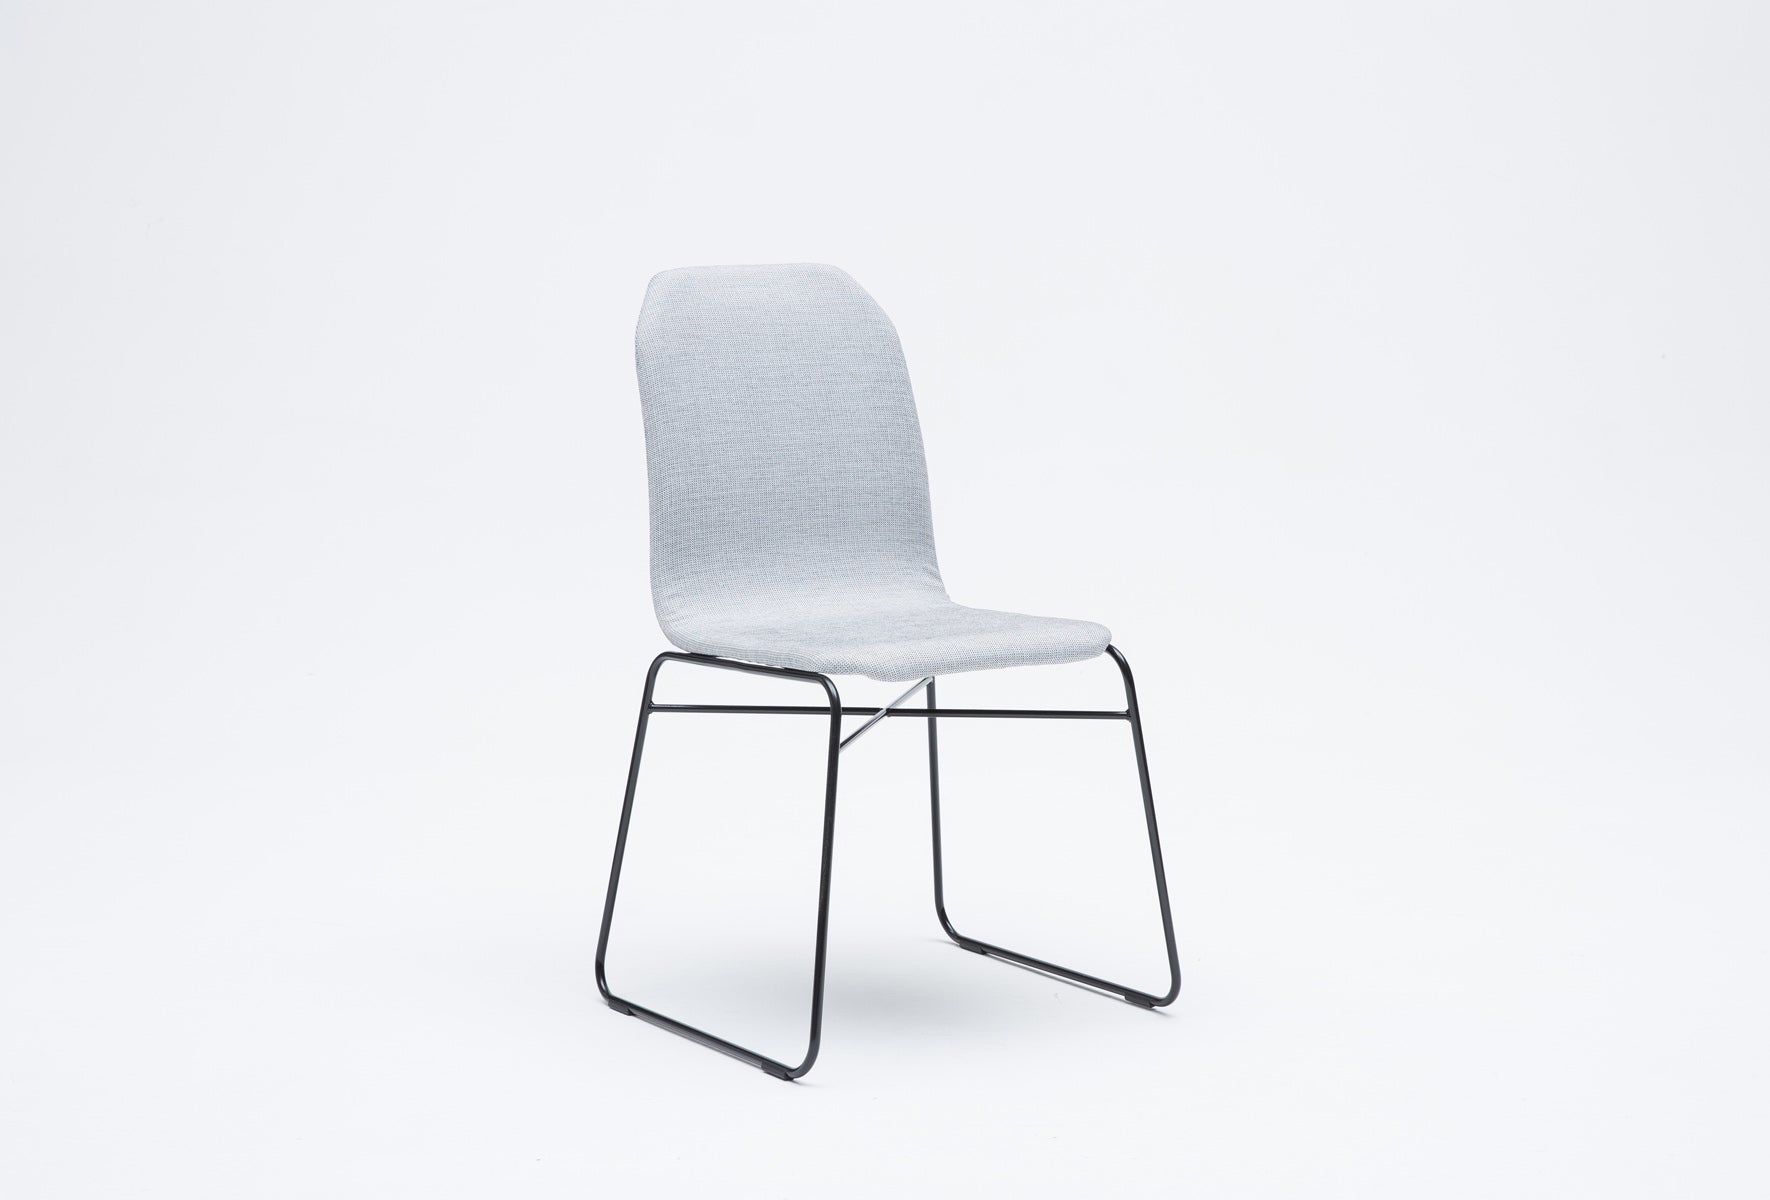 Bevel Chair